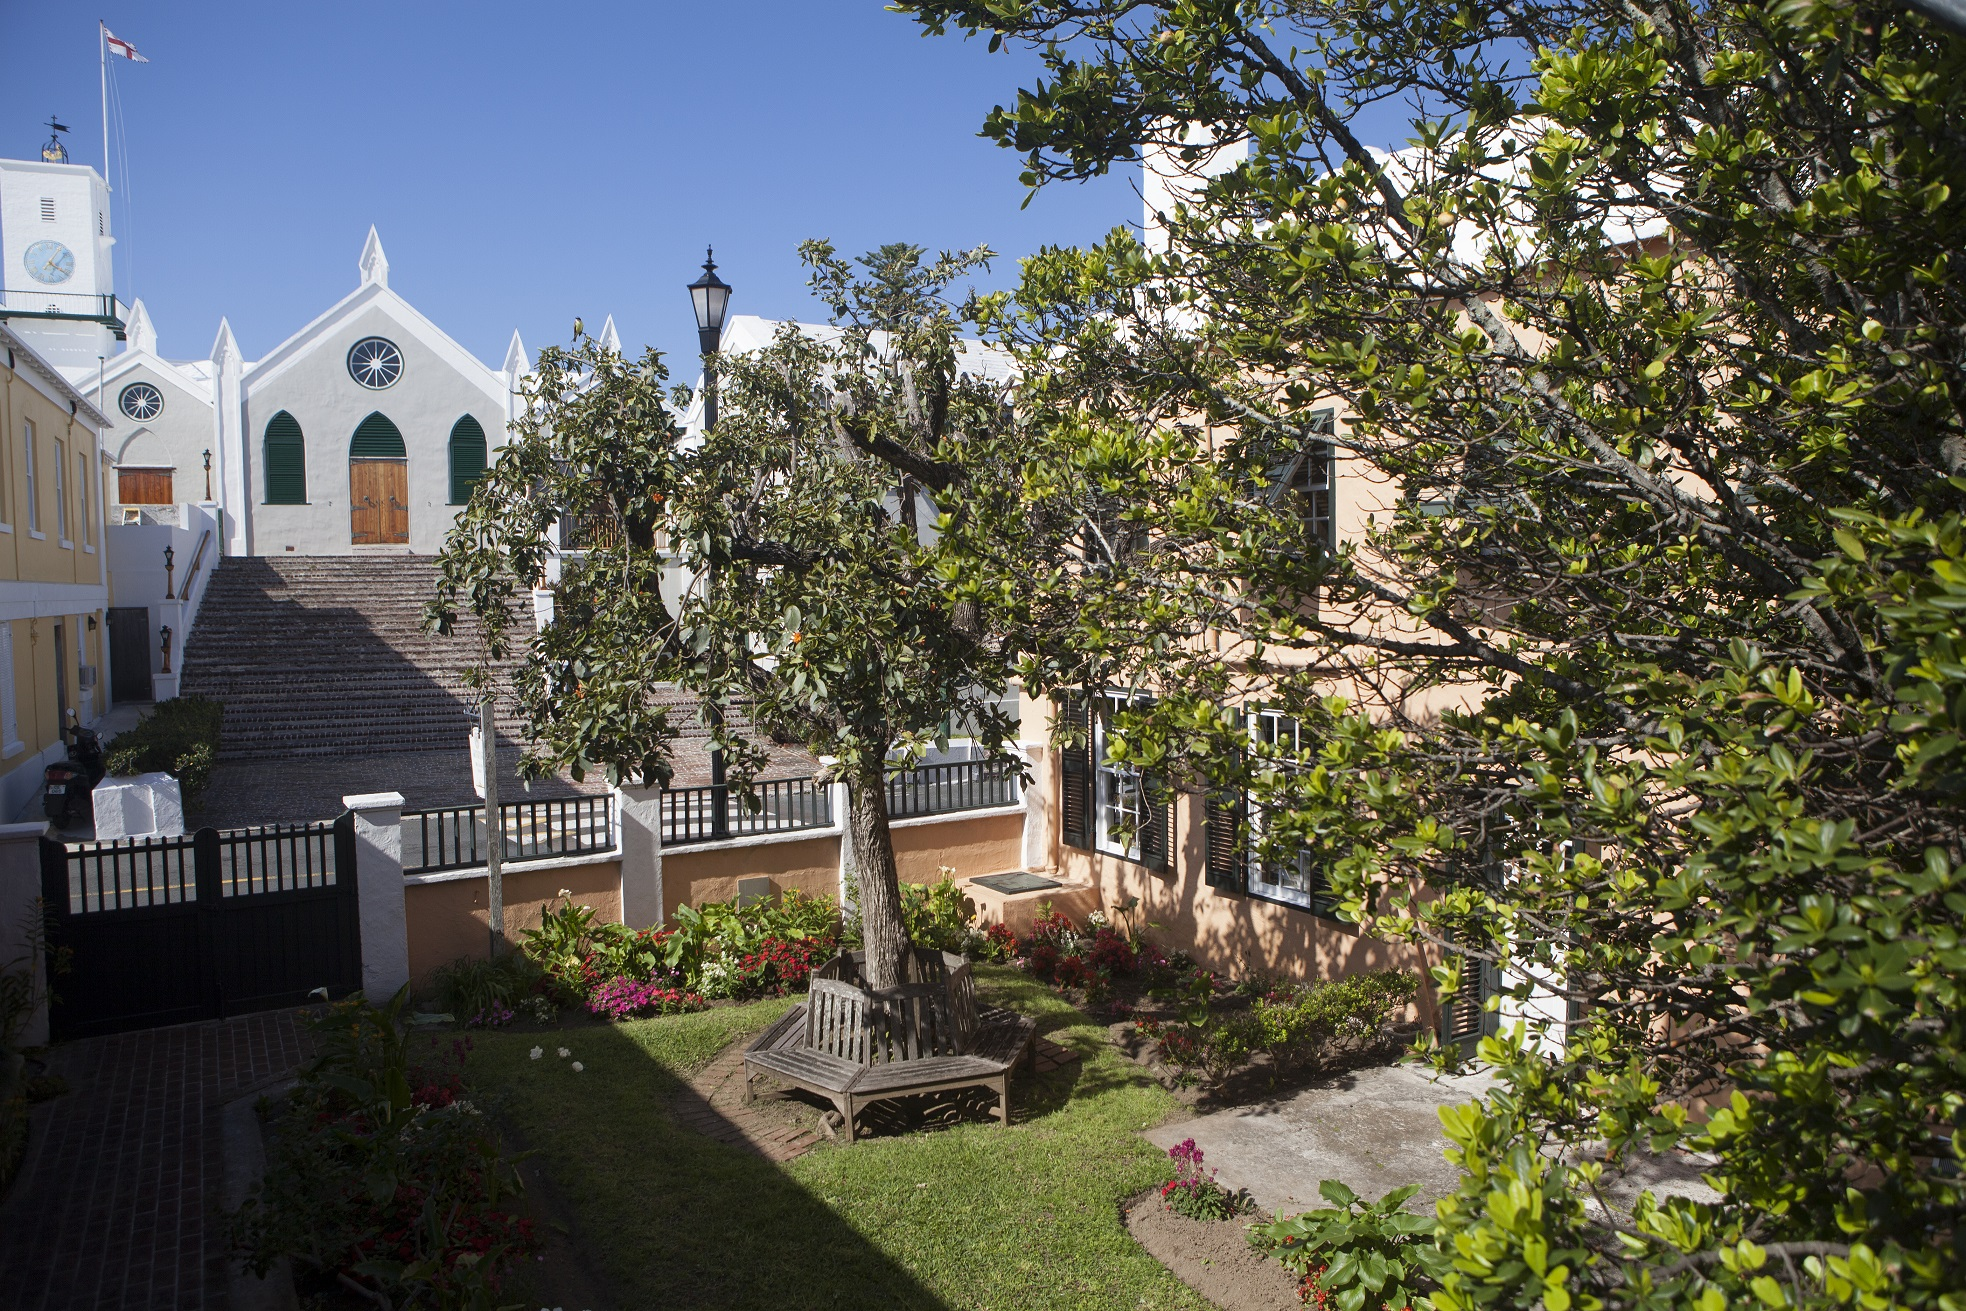 St Peter's Church and the garden of the Globe Hotel.